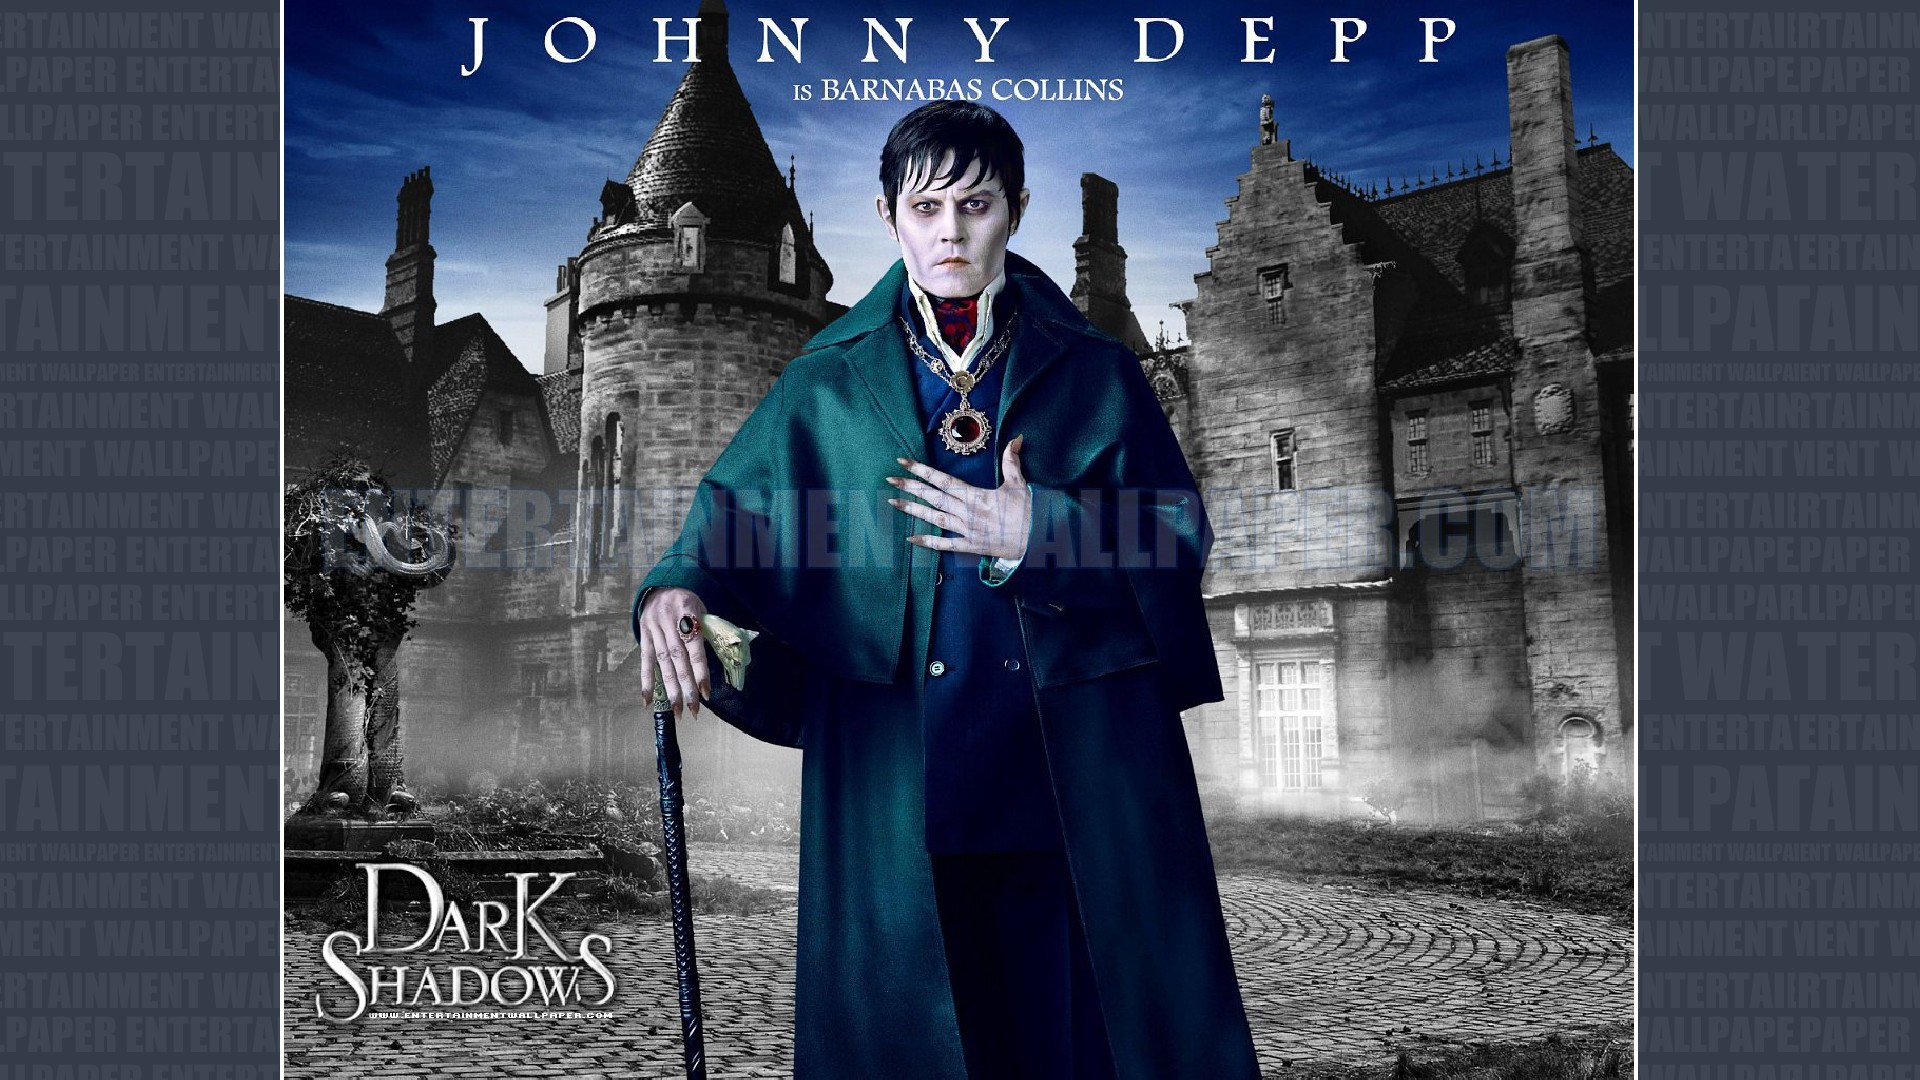 tv show dark shadows wallpaper 10031790 size 1920x1080 more dark 1920x1080